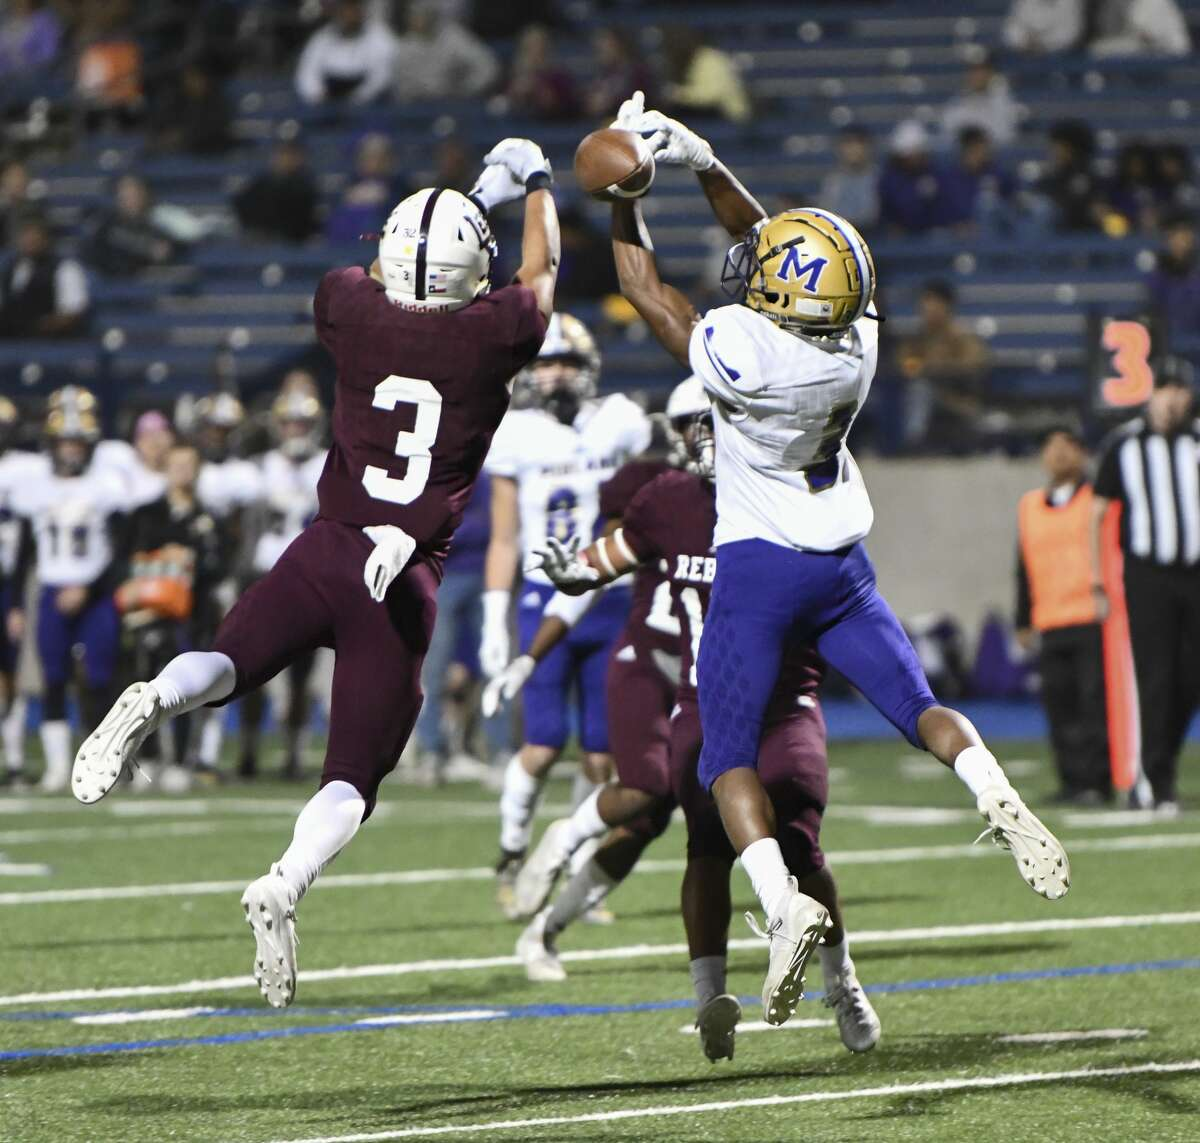 Midland High and Lee High faced off Nov. 1, 2019, at Grande Communications Stadium. Studies have shown that residents are happy with their city if they have opportunities for chance encounters - such as might occur at a sporting event.